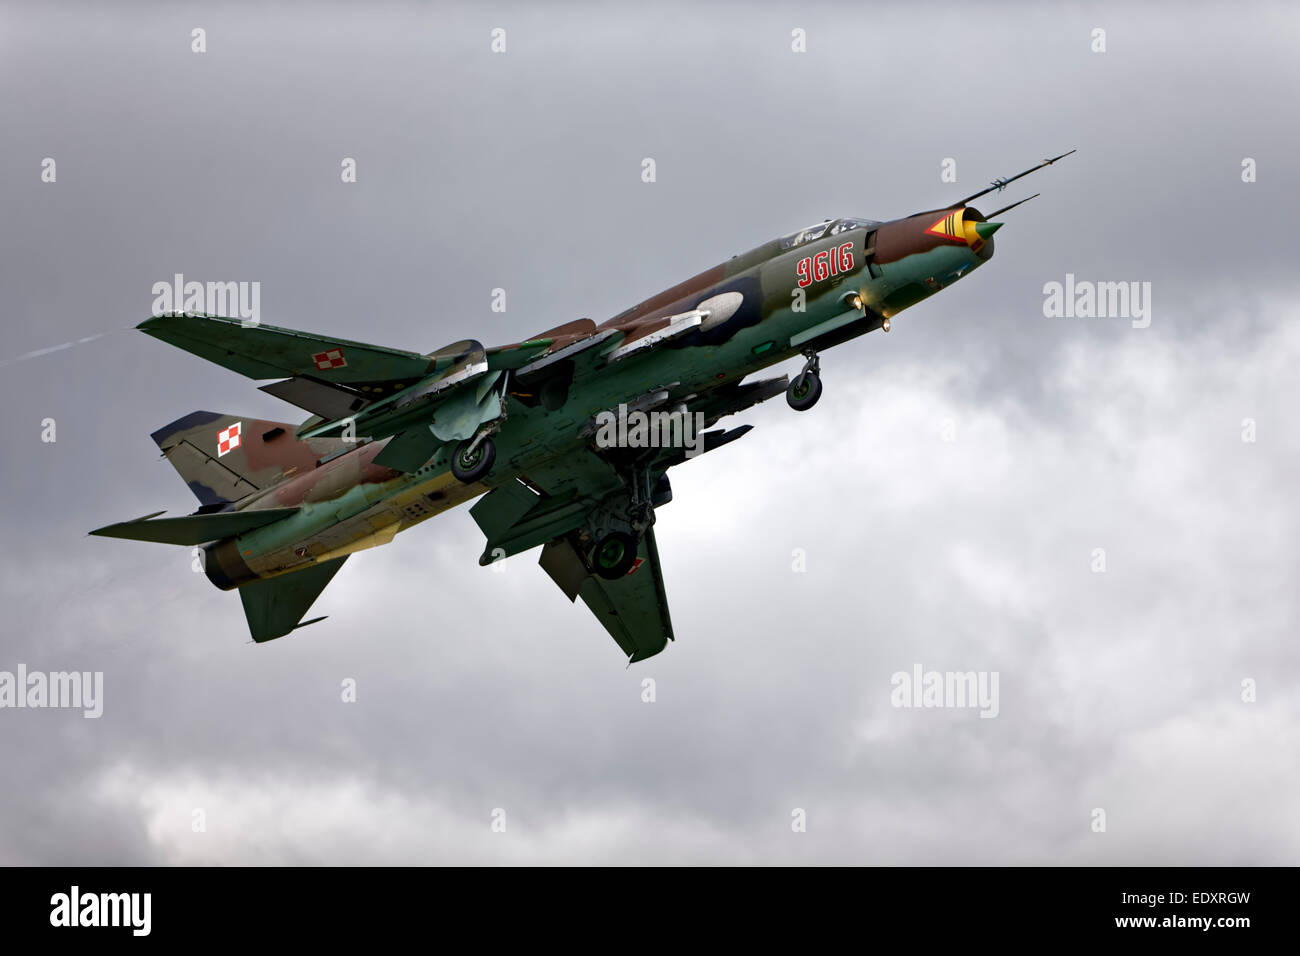 Polish Air Force Sukhoi Su-22M-4K 'Fitter' - Stock Image